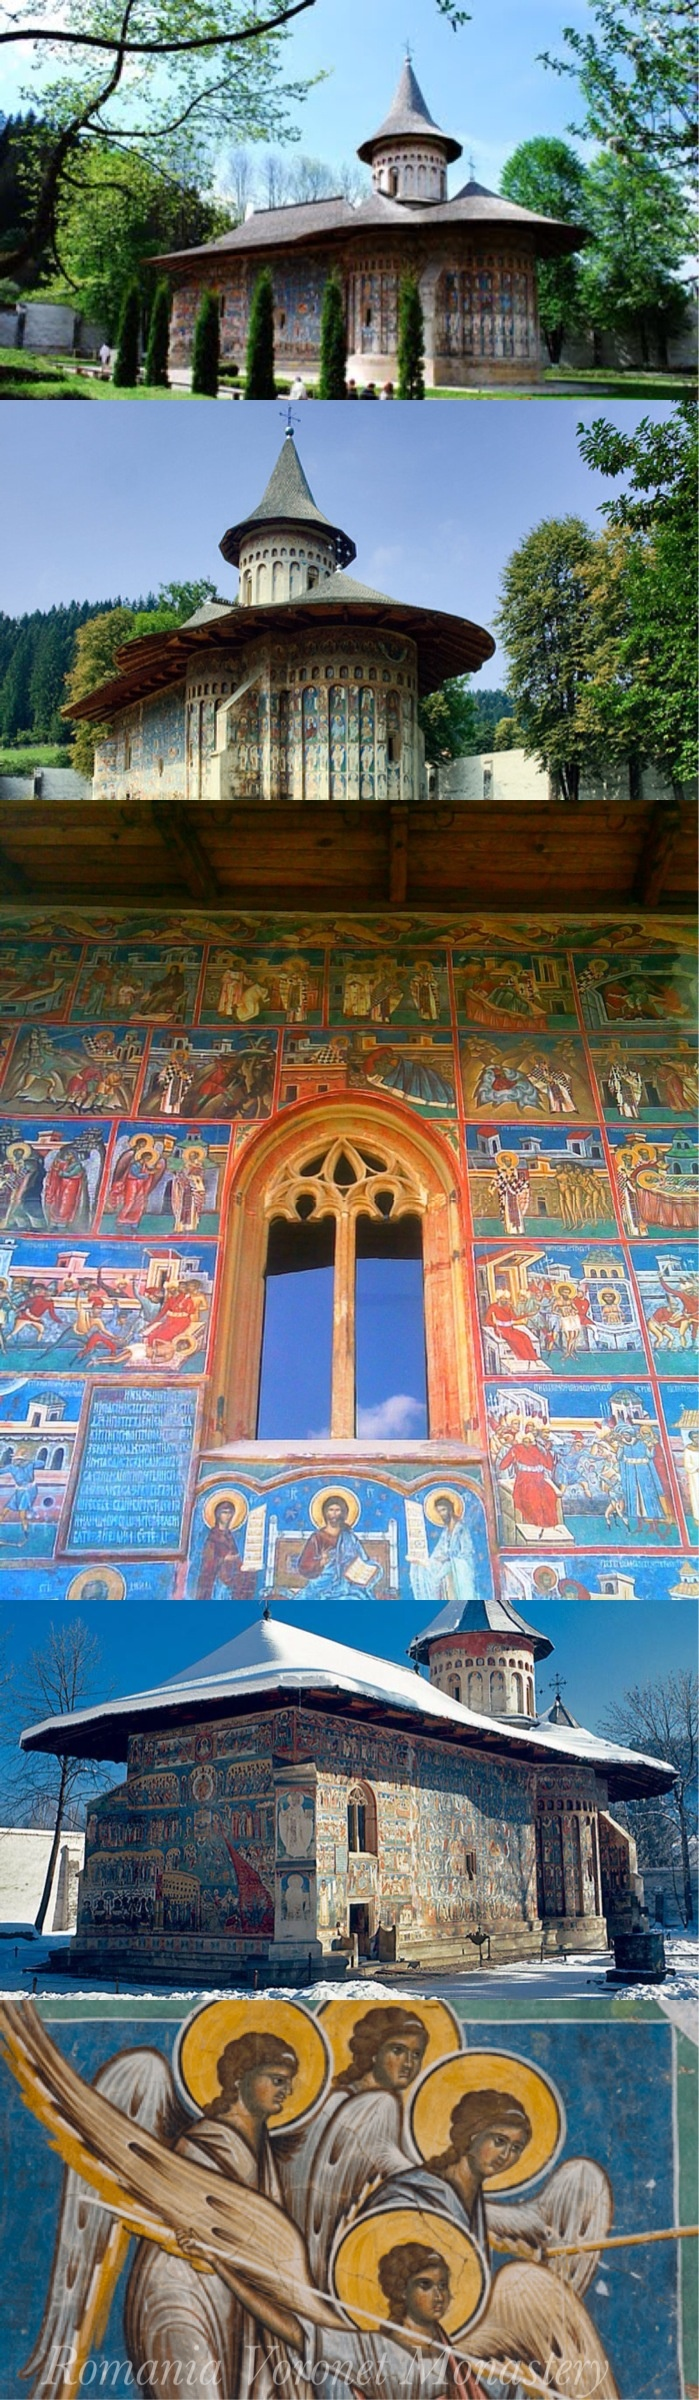 """Voroneț is a monastery in Romania, located in the town of Gura Humorului, Moldavia. It is one of the famous painted monasteries from southern Bukovina, in Suceava County. Between May and September 1488, Stephen III of Moldavia (known as """"Stephen the Great"""", in Romanian Ștefan cel Mare) built the Voroneț Monastery  to commemorate the victory at Battle of Vaslui. Often known as the """"Sistine Chapel of the East"""","""